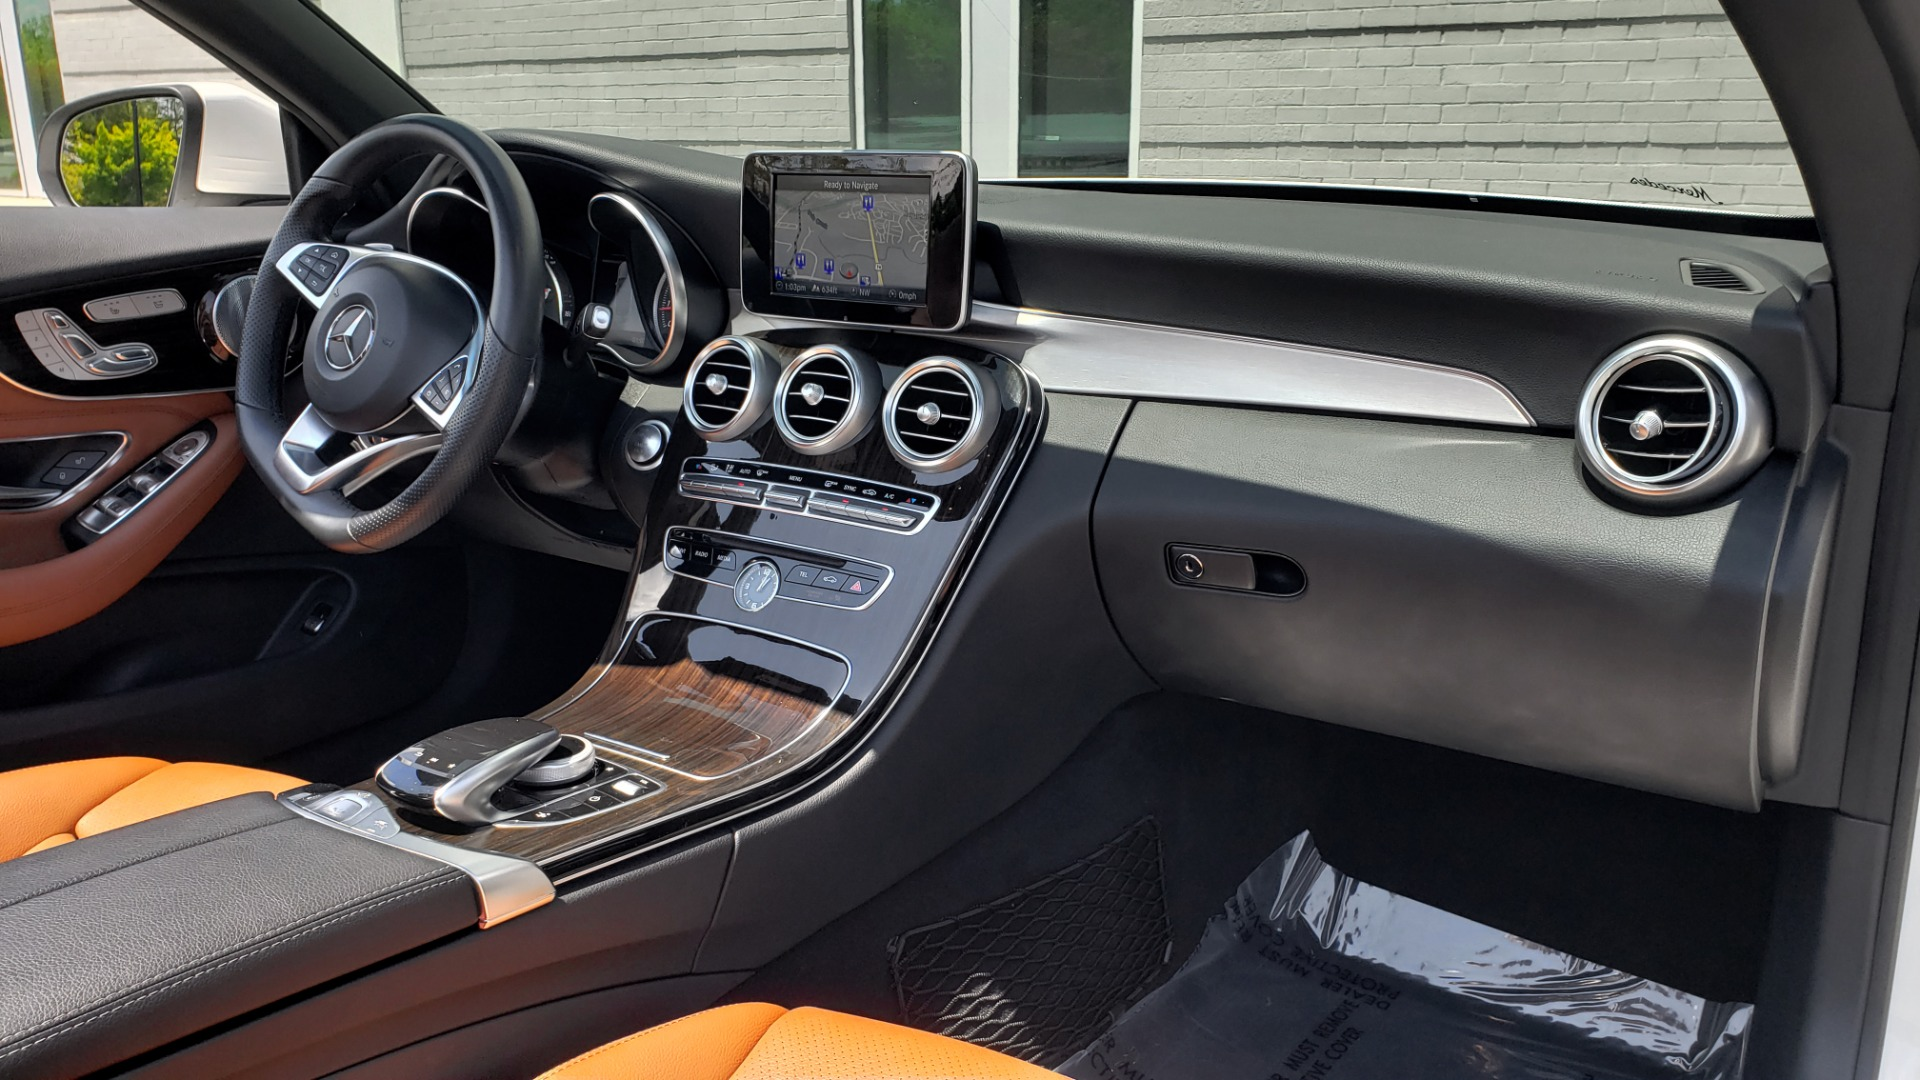 Used 2018 Mercedes-Benz C-CLASS C 300 CABRIOLET PREMIUM / AWD / BURMESTER SND / APPLE / REARVIEW for sale $44,995 at Formula Imports in Charlotte NC 28227 66